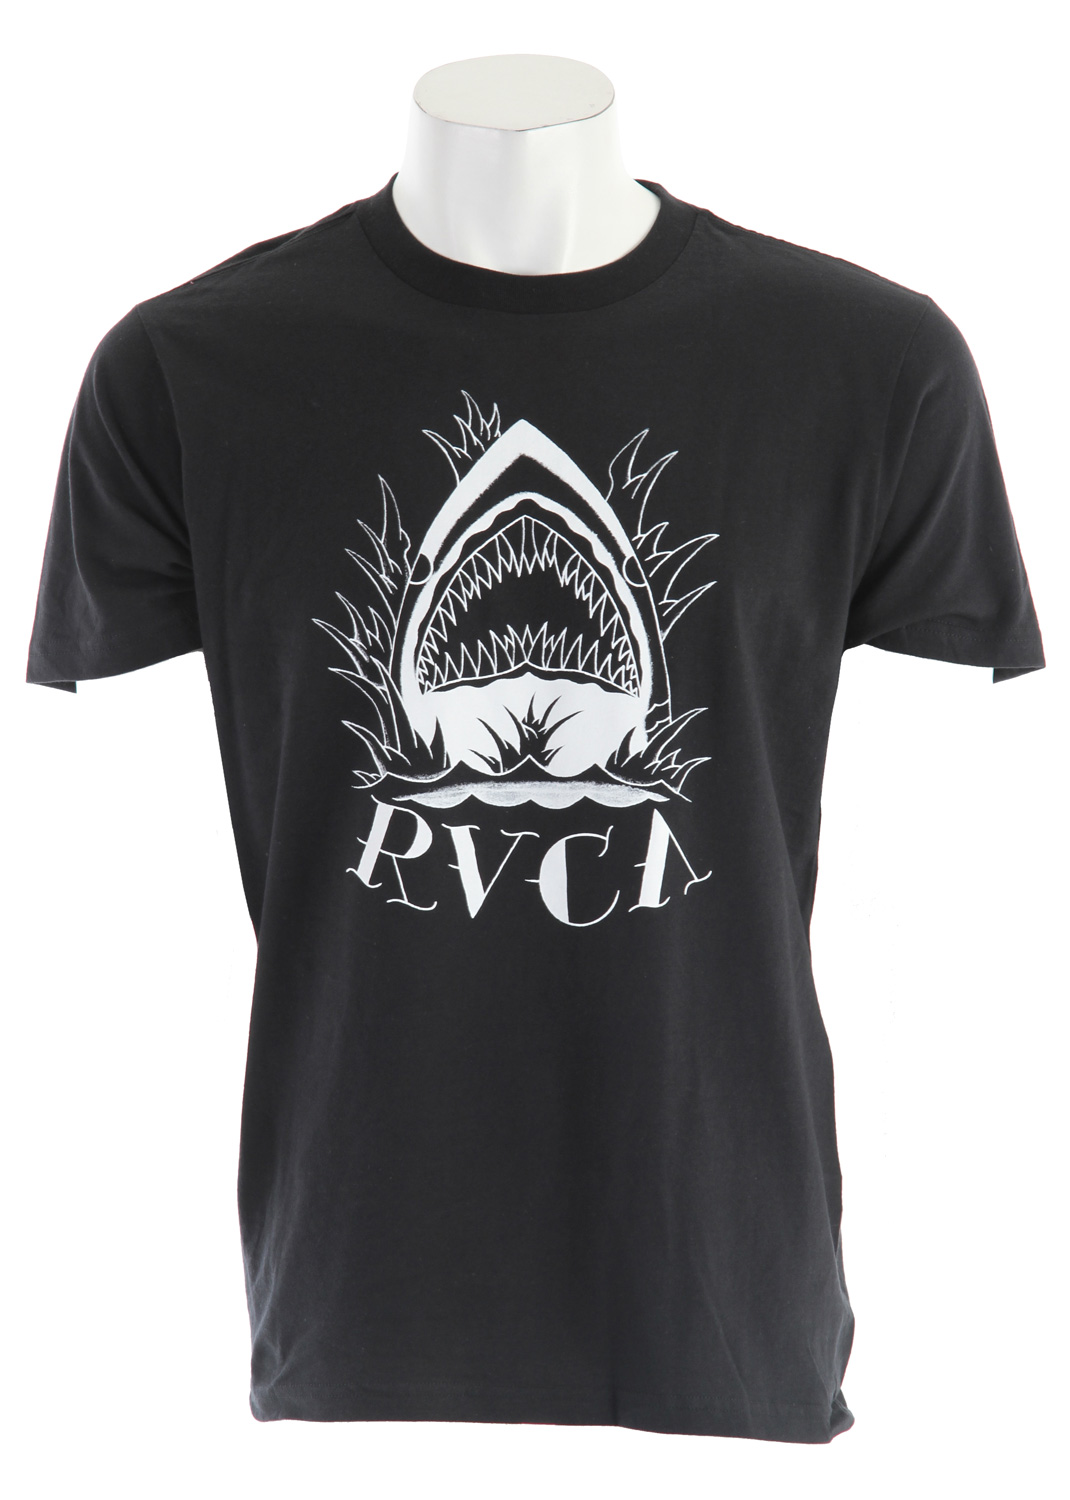 Key Features of the RVCA Shark Face T-Shirt: RVCA's short sleeve 100% combed cotton tee - $25.95